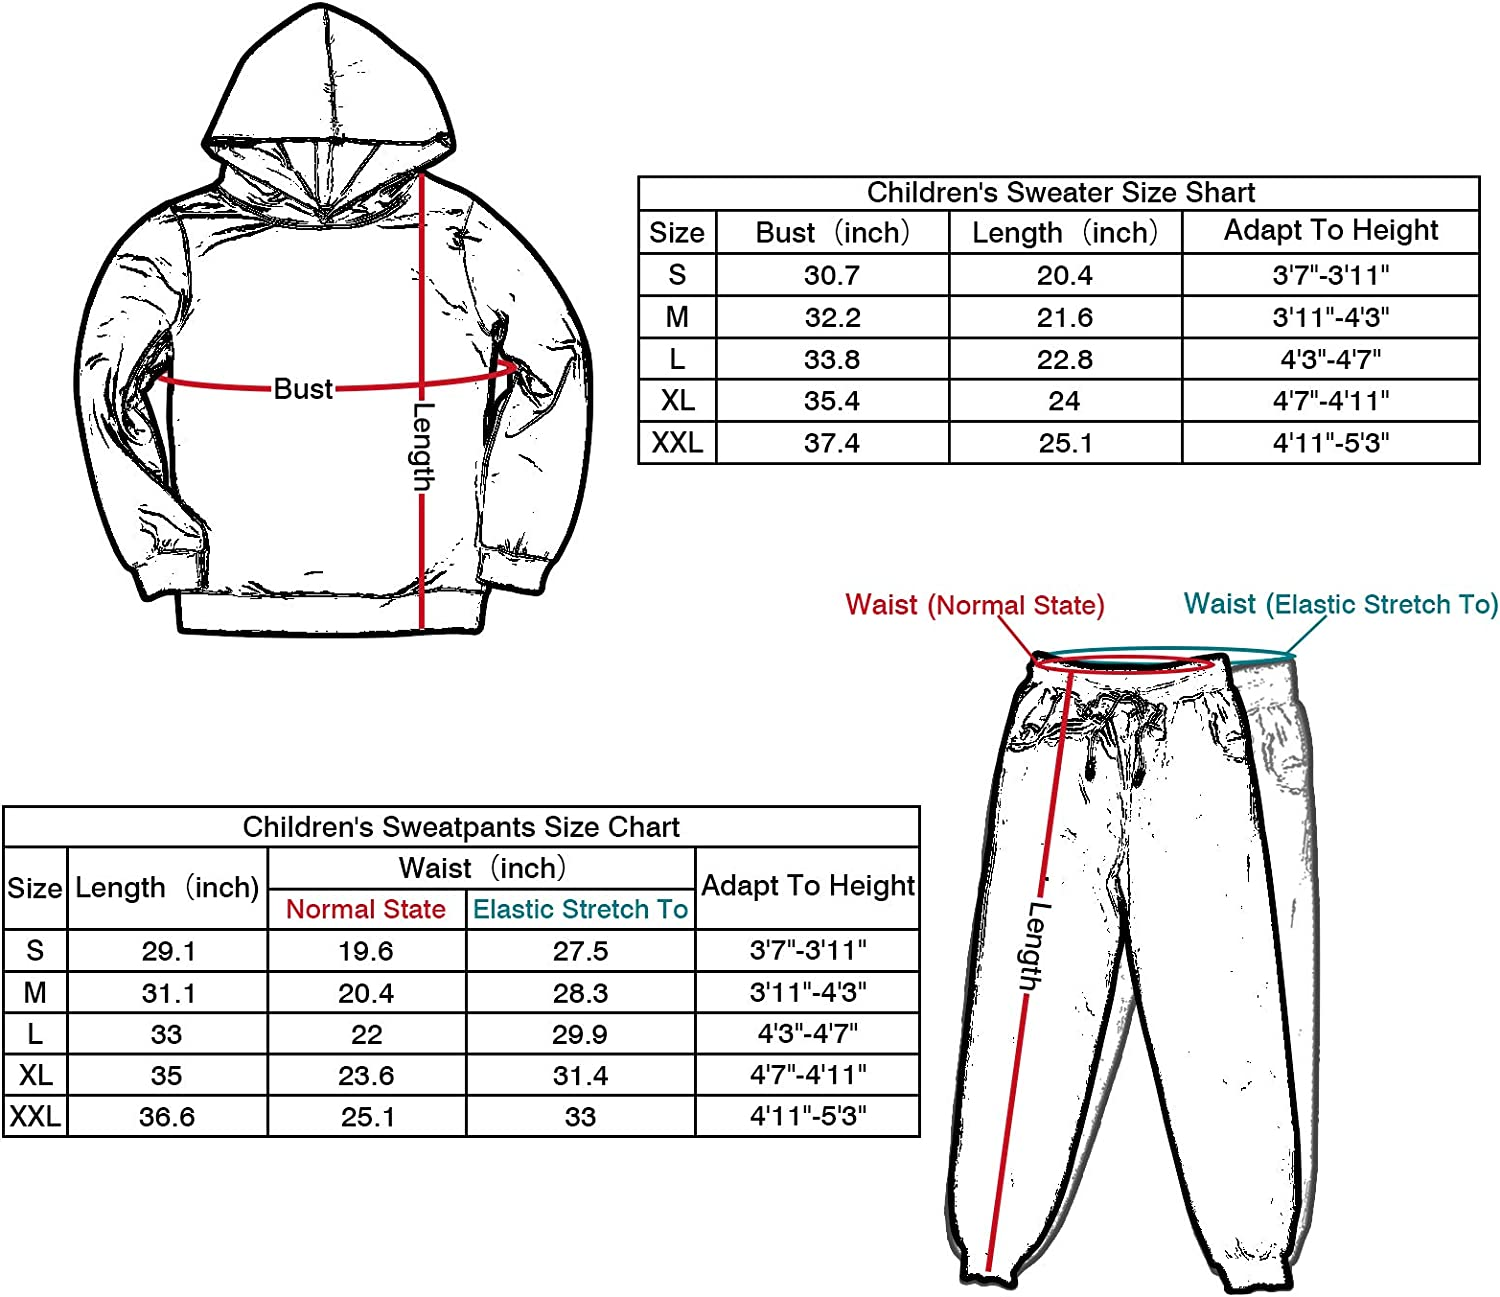 Youth Among Us Imposter Definitely Not Me Pullover Hoodie and Sweatpants Suit 2 Piece Outfit Sweatshirt Set for Boys Girls